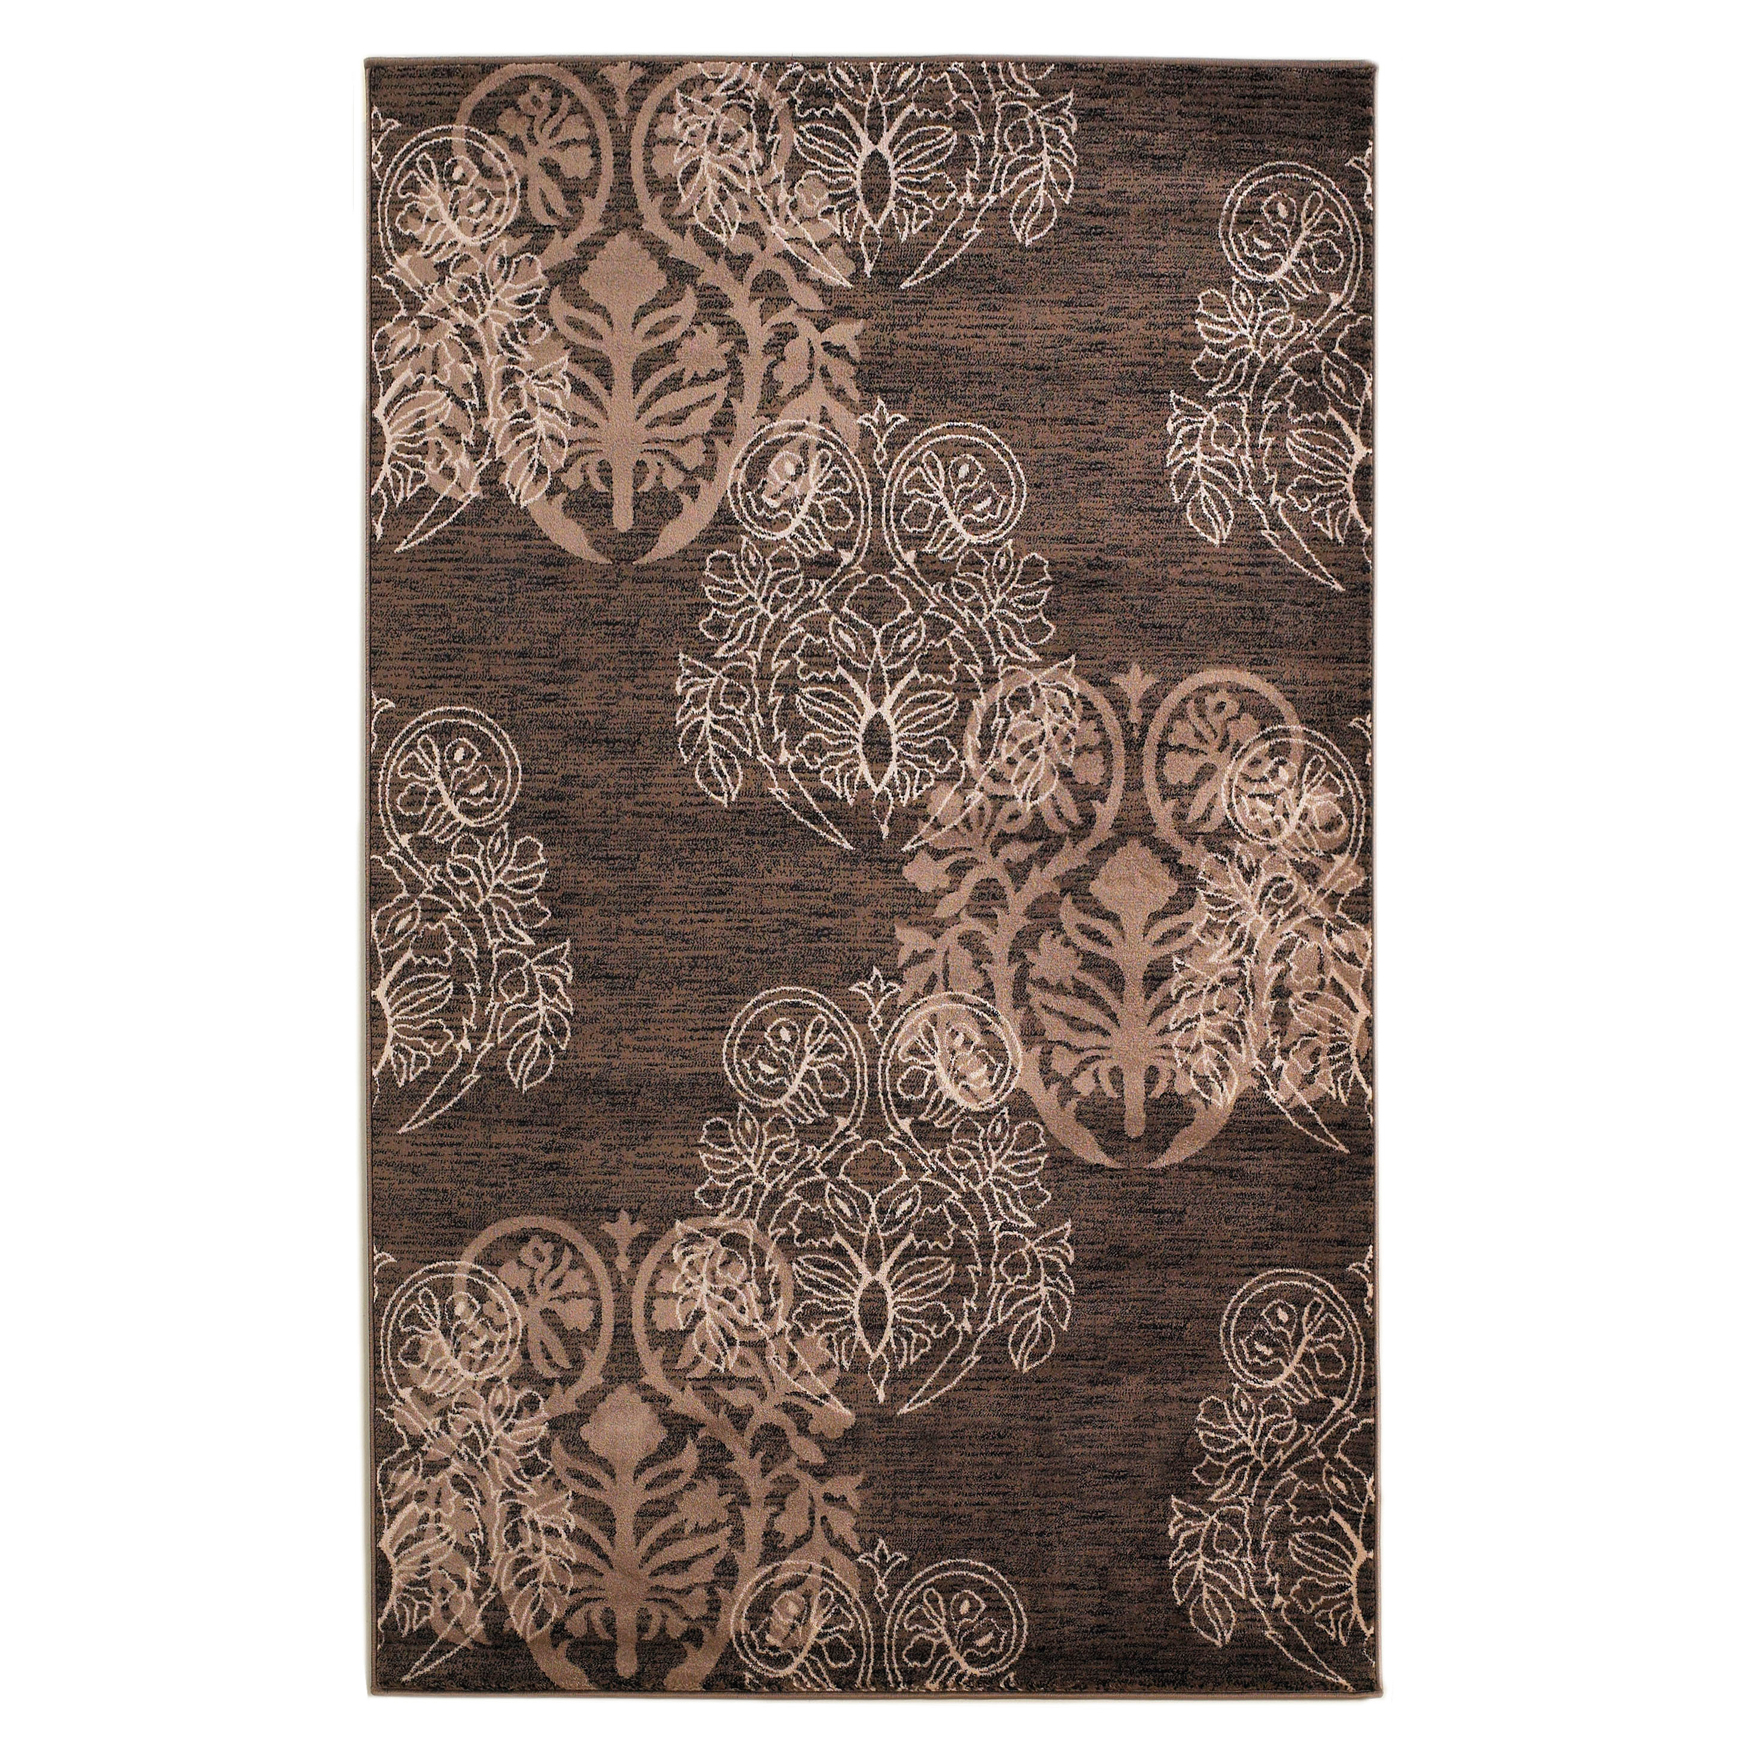 Milan Brown/Beige 2'X3' Area Rug, BROWN BEIGE